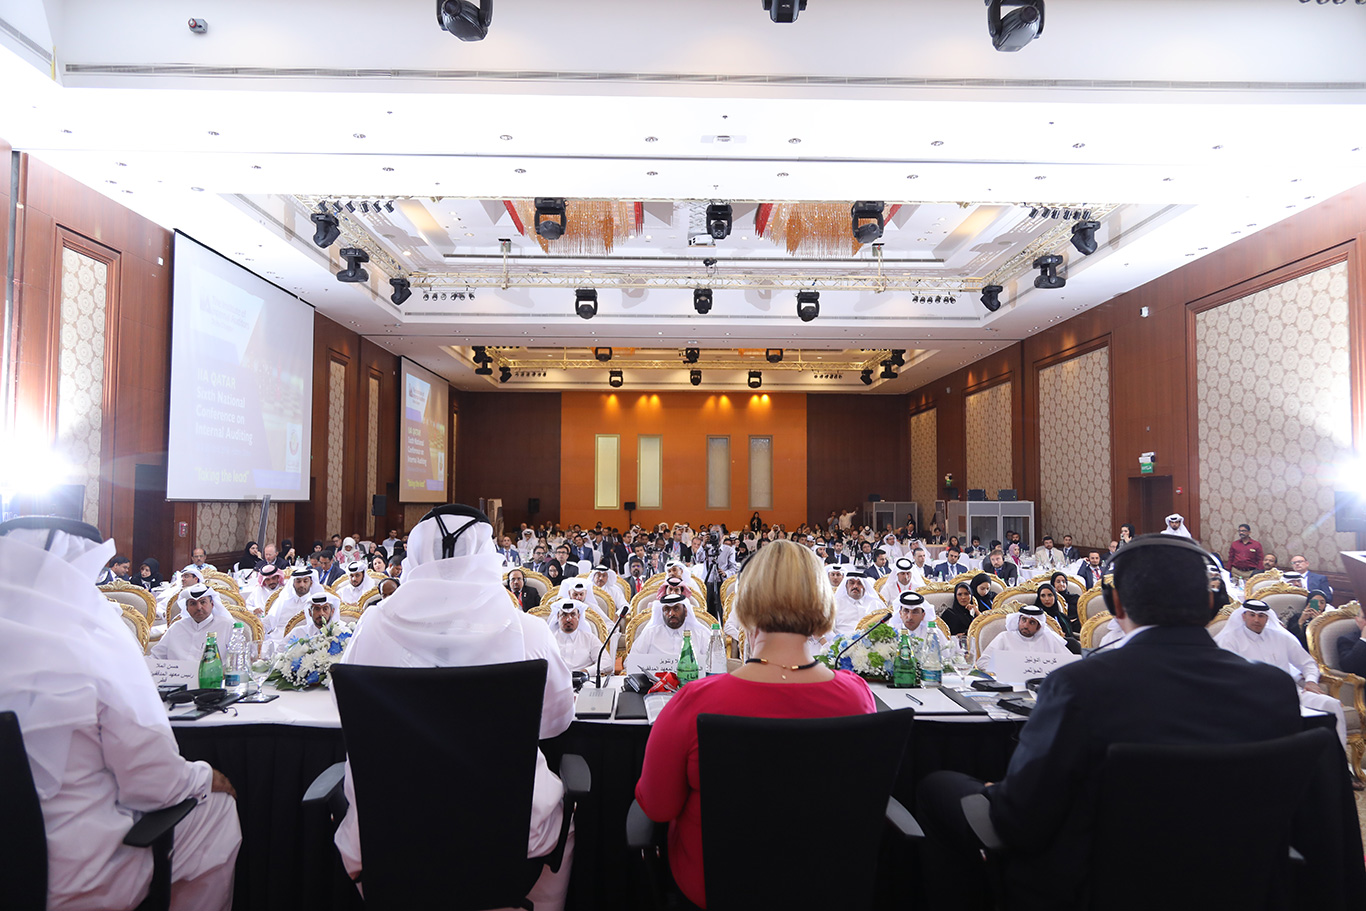 Professional Event Video Production Company in Doha Qatar